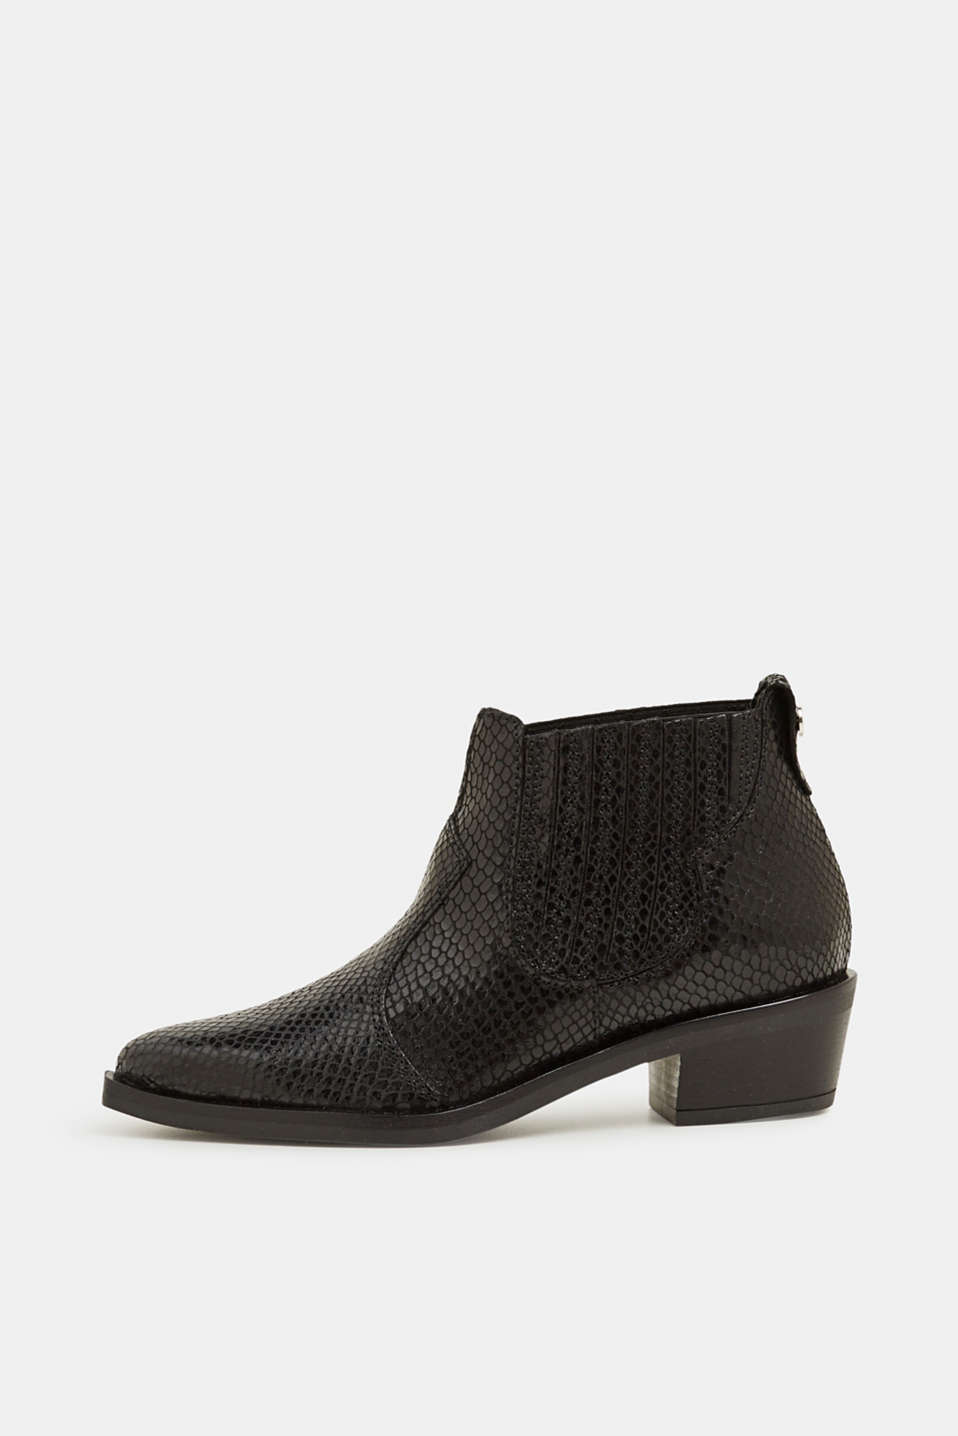 Esprit - Made of leather: cowboy boots with a textured, snakeskin pattern